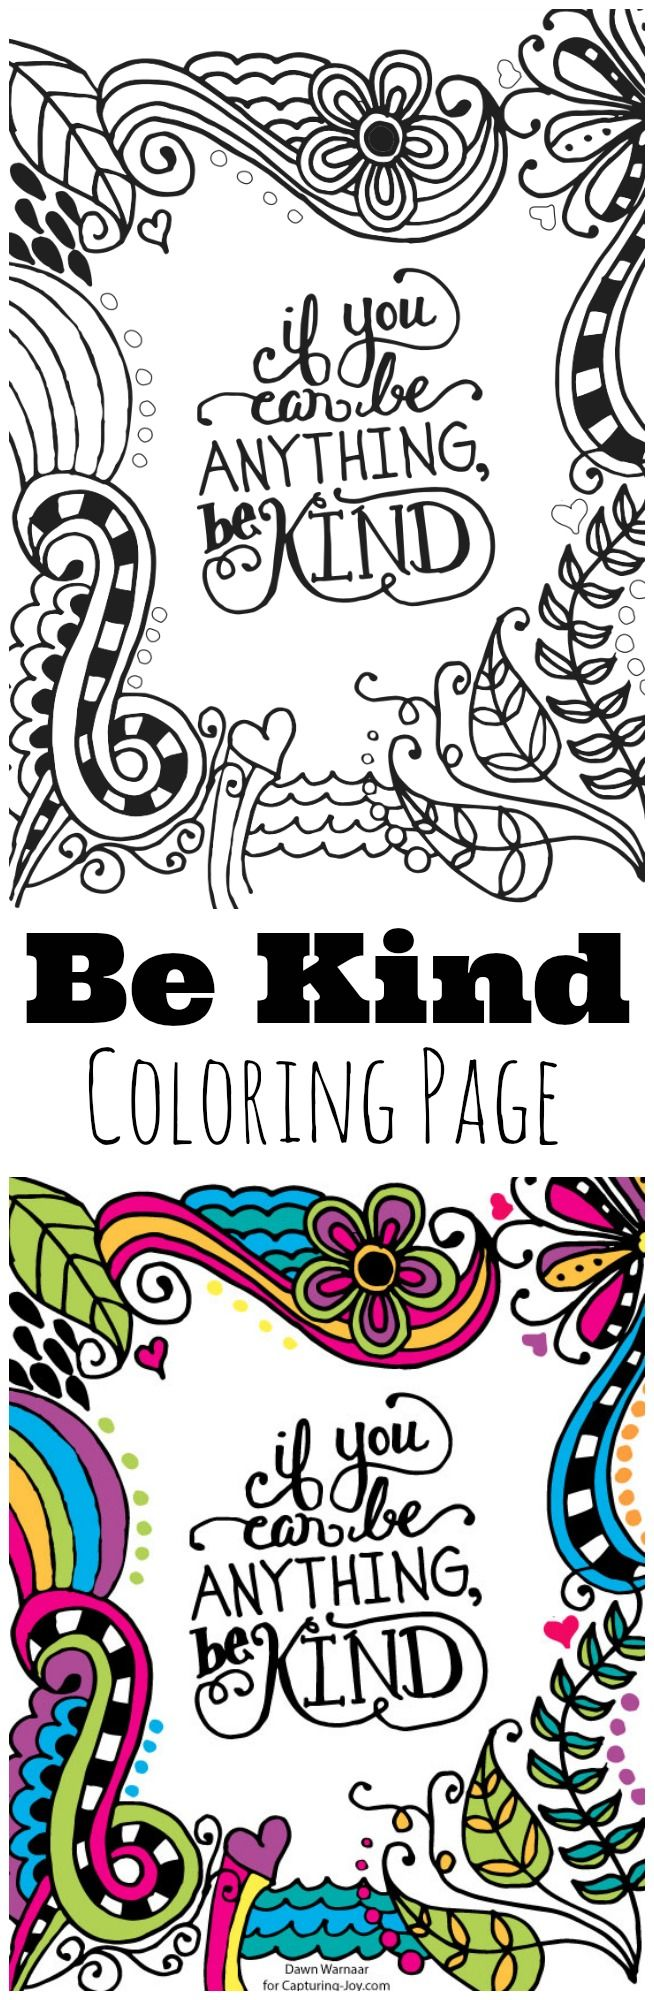 Best photos of t shirt coloring template t shirt drawing - Be Kind Kids Coloring Page Great For Kids To Help Encourage Kindness Hang On